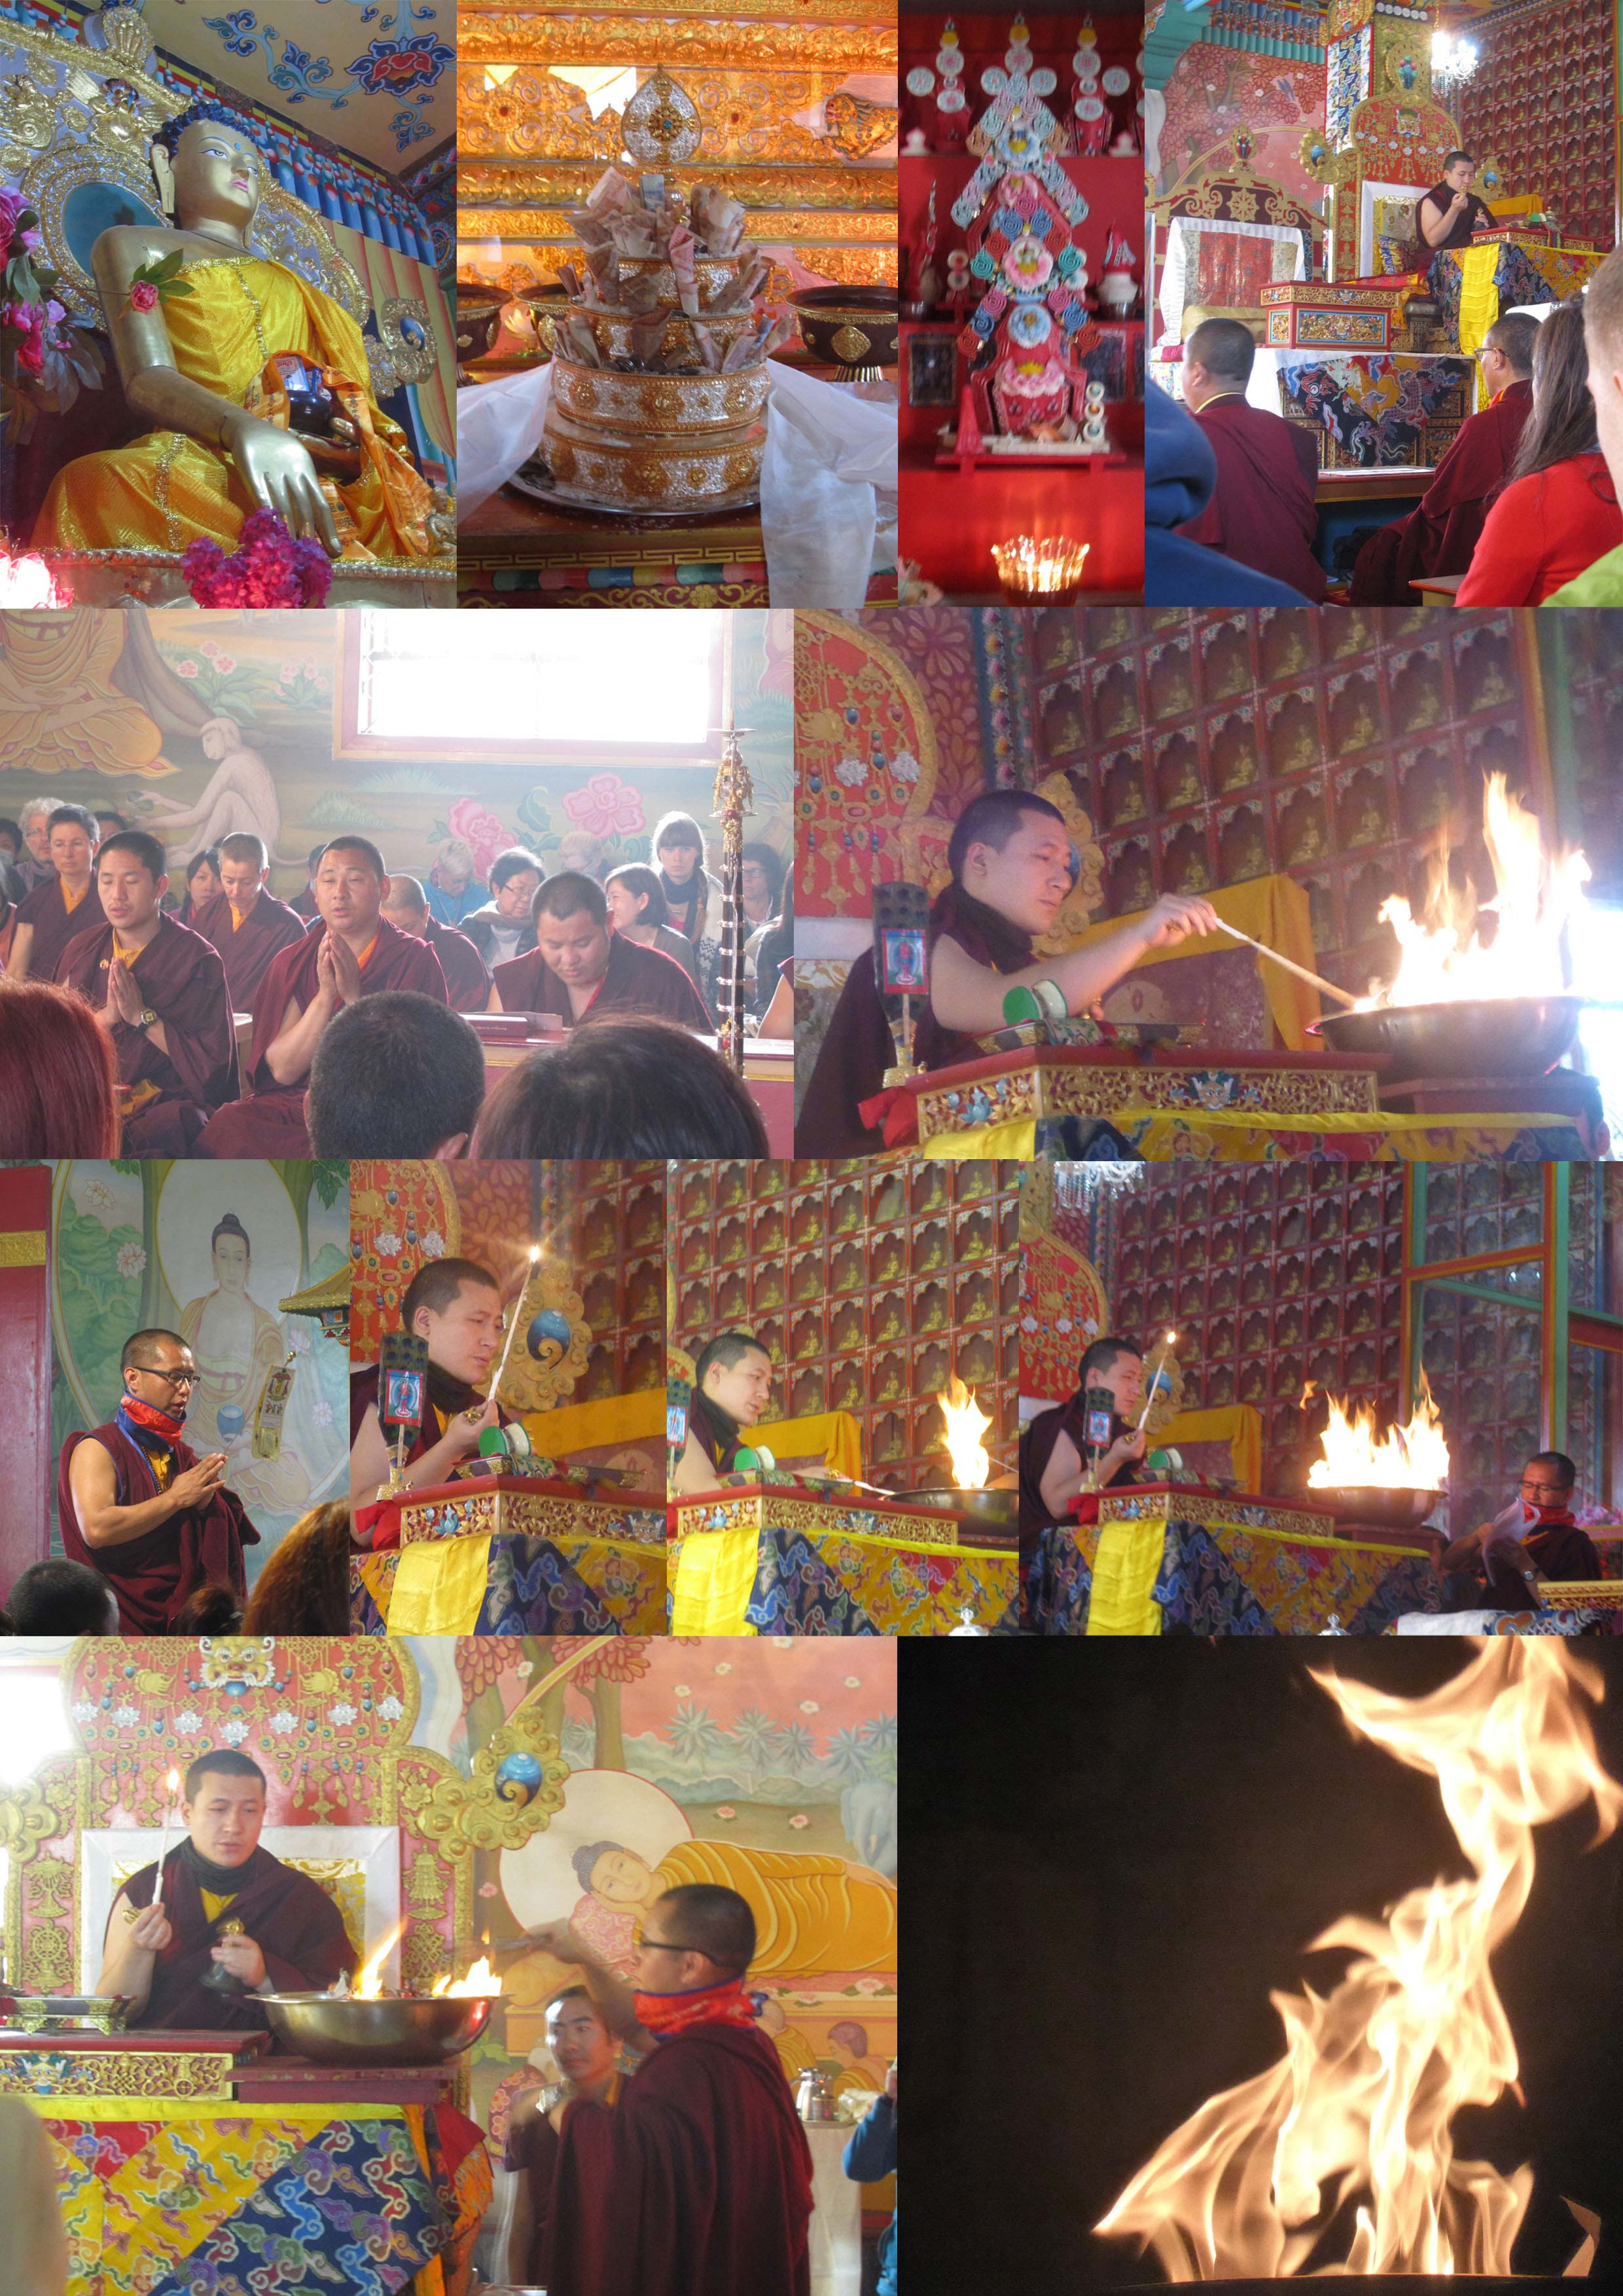 Kagyü Mönlam - Feuer-Puja für die Verstorbenen 2013 / Kagyu Moenlam 2013 Fire-Puja for the deceased - fotocredits/copyright: Gerold Jernej